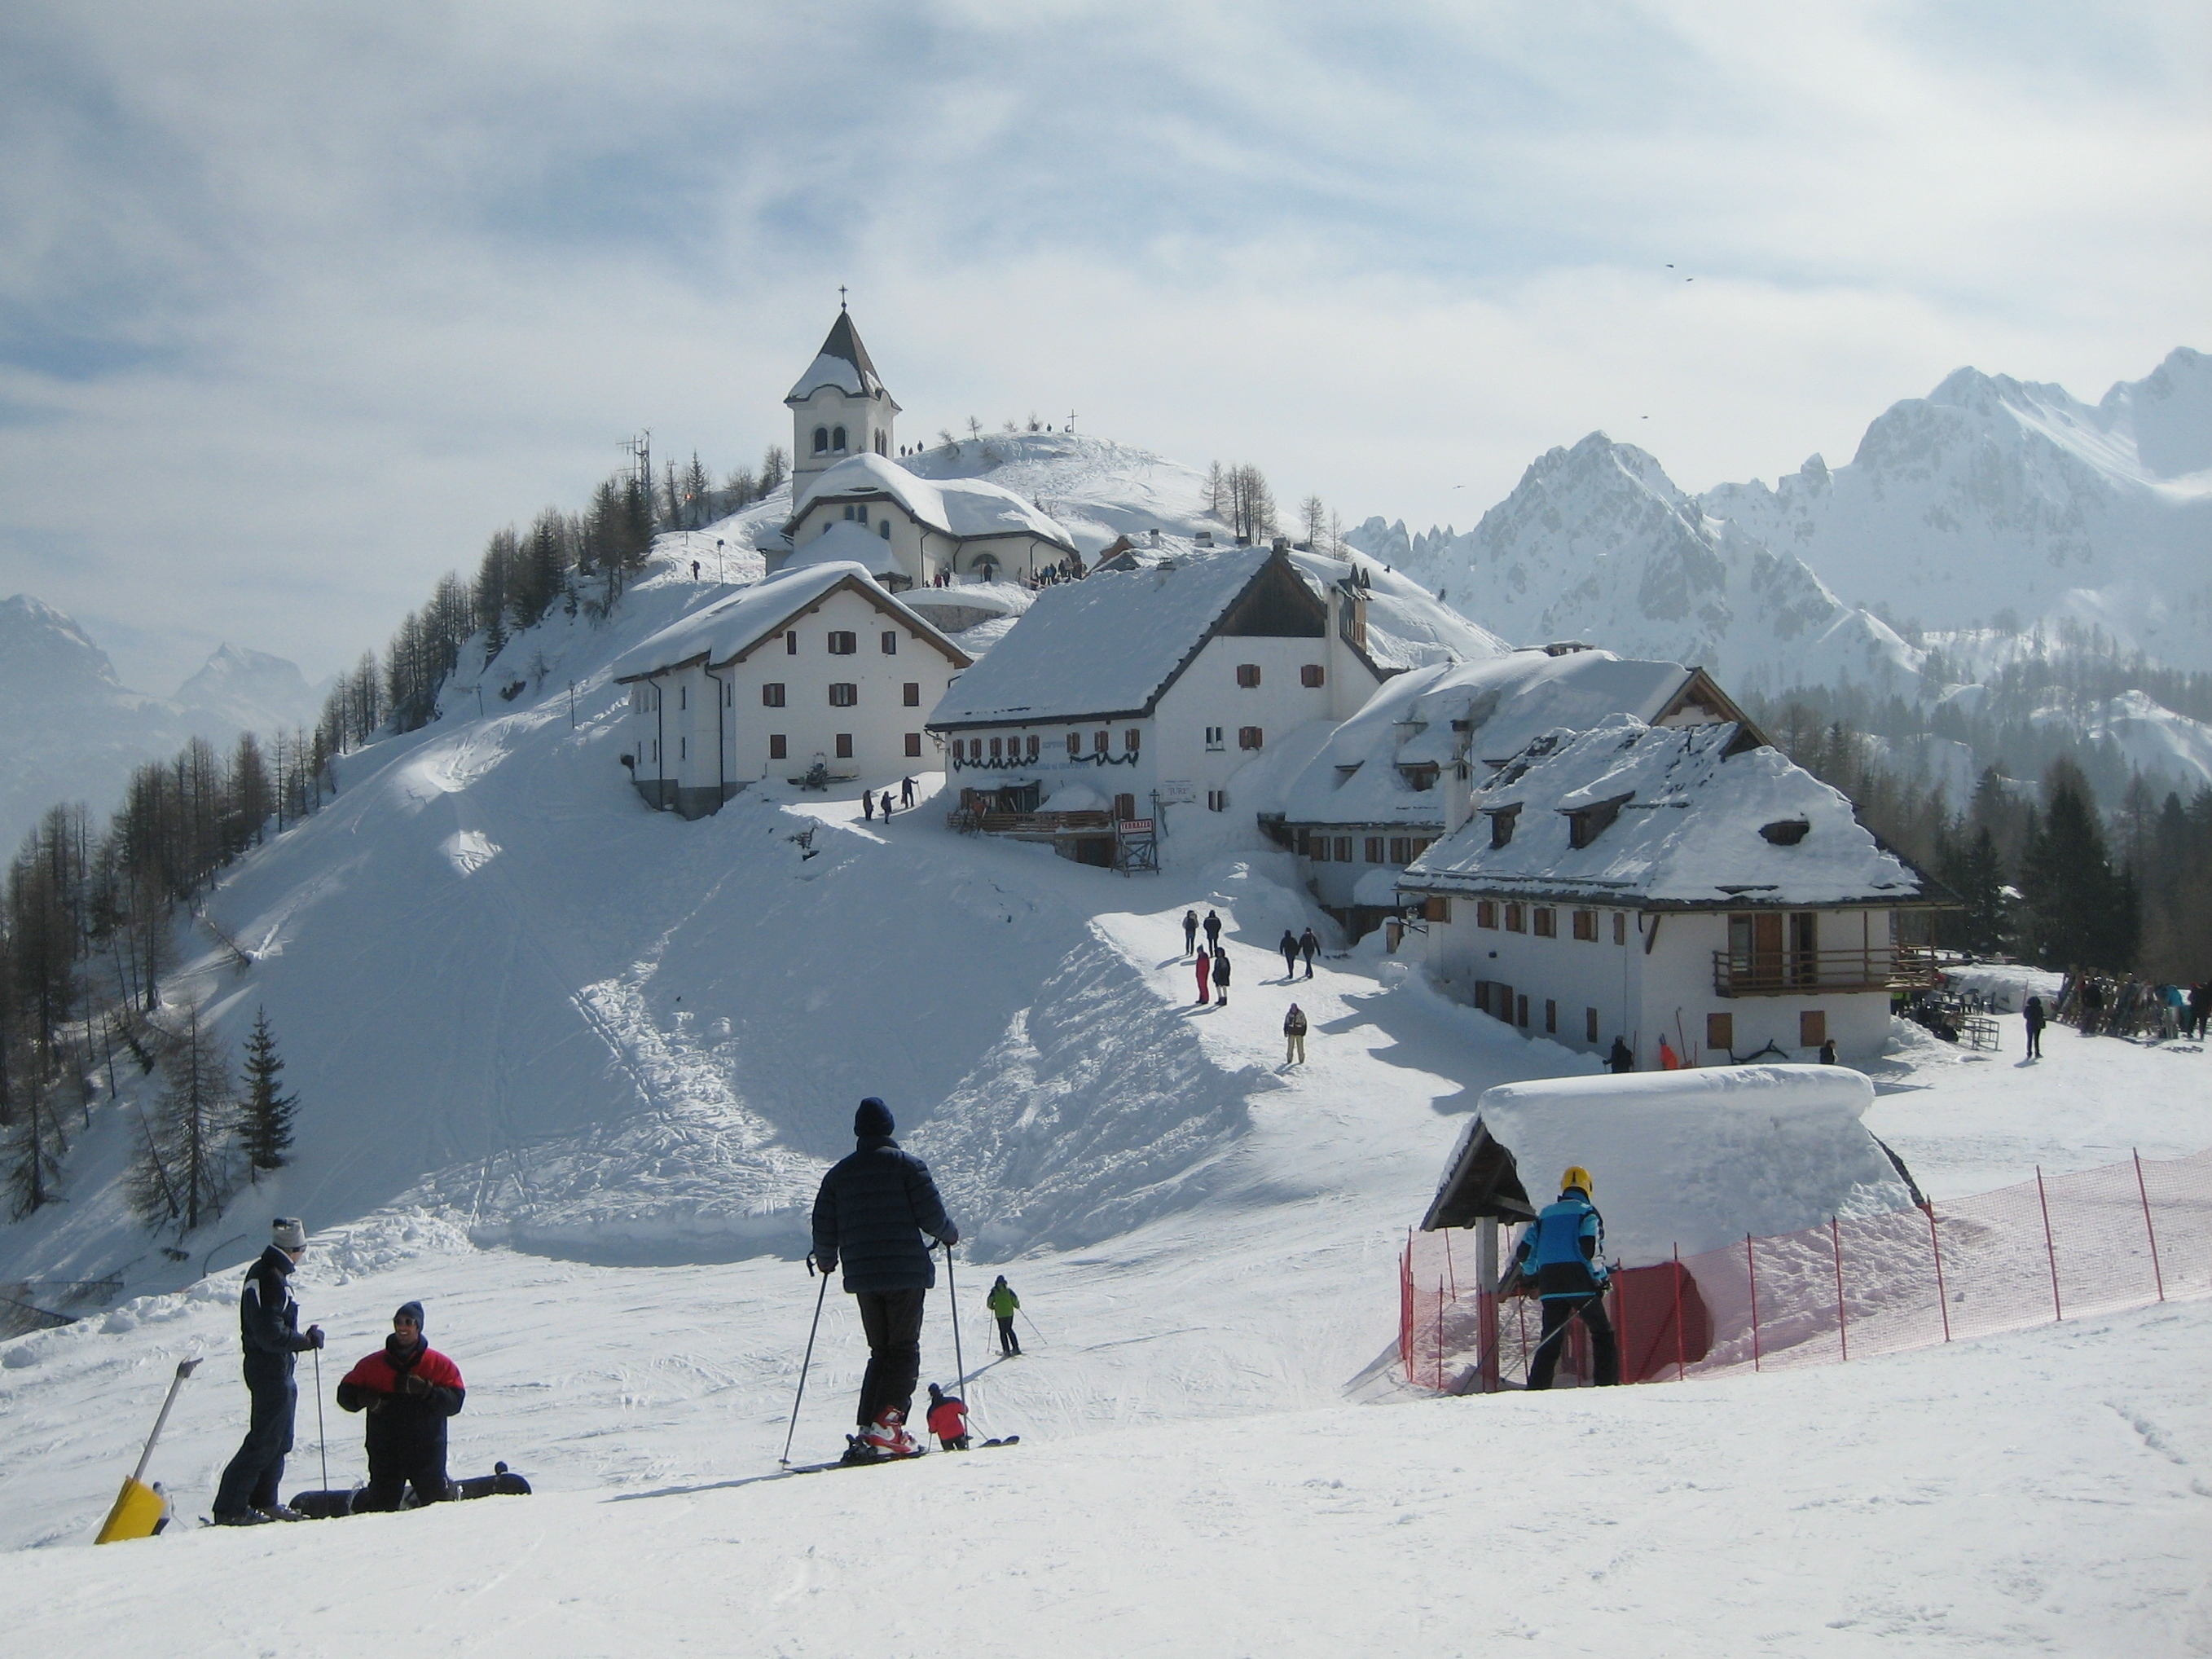 review for tarvisio ski resort - snow central uk